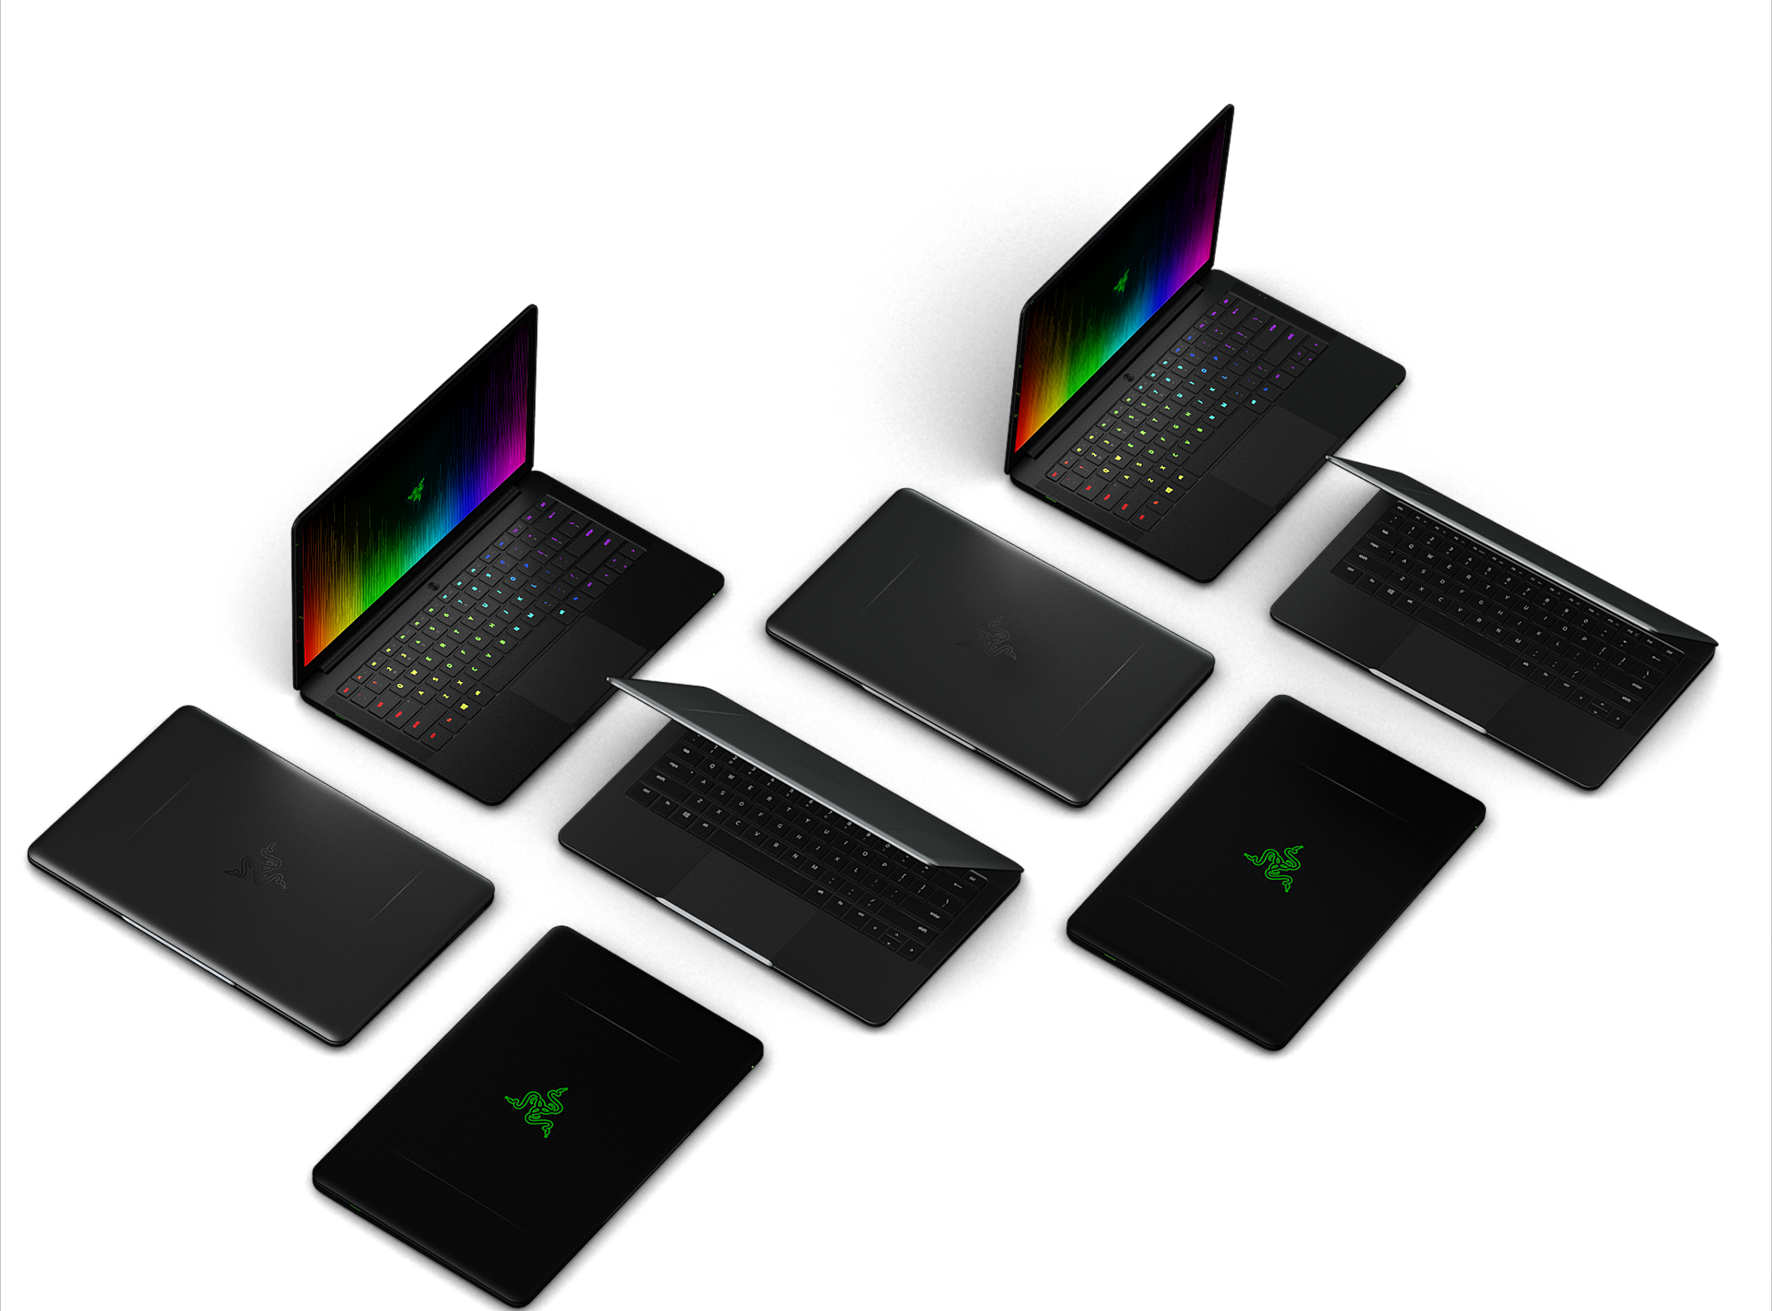 The New Razer Blade Stealth Has The Latest 7th Gen Intel Core Processors Up To 16gb Of Ram The Most Visually Stunning 12 5 Razer Blade Razer Gaming Laptops